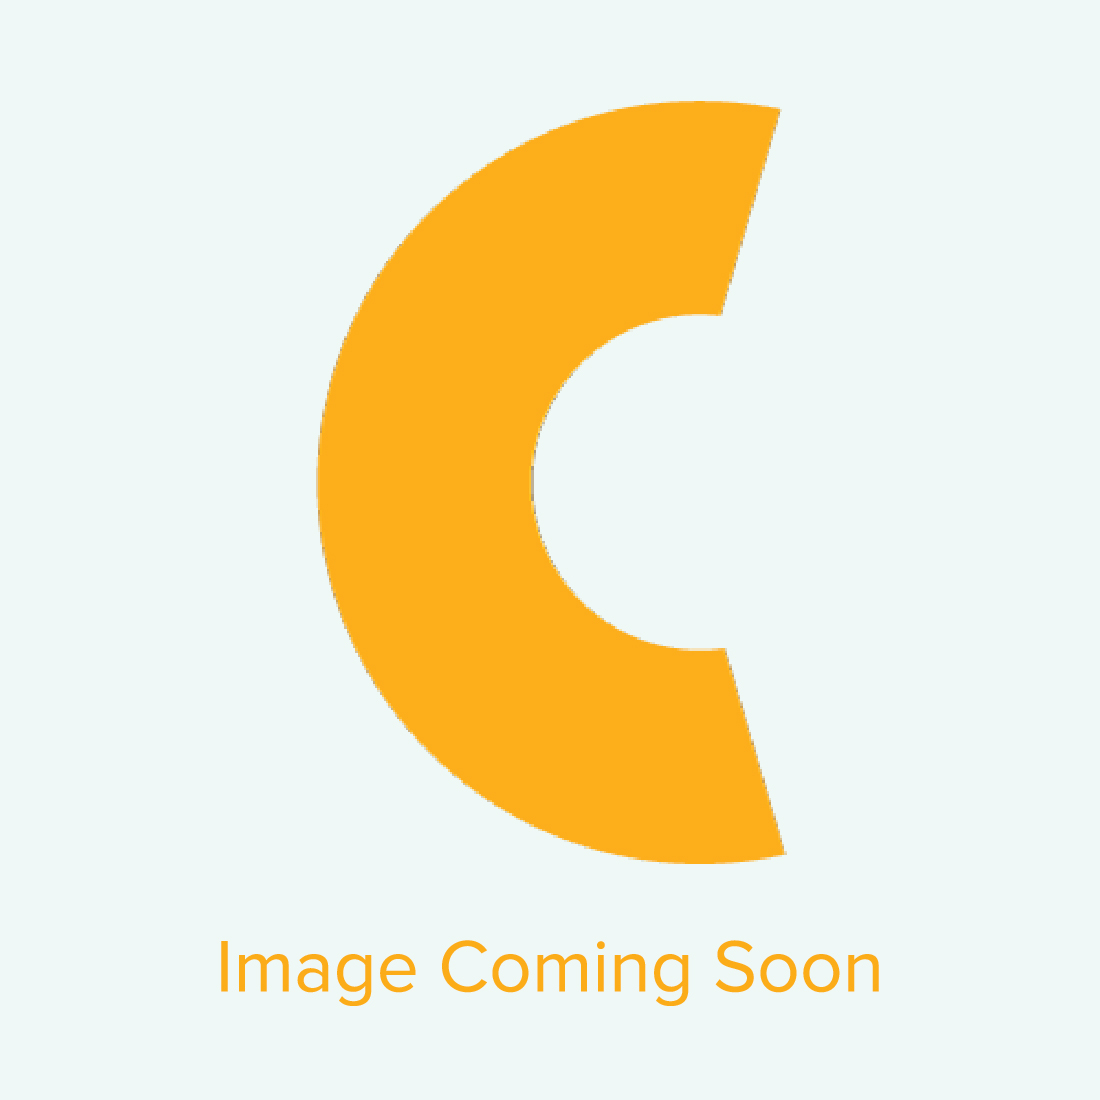 Red Grid 2.0 - Inkjet Heat Transfer Paper Rolls - 100 ft. Length